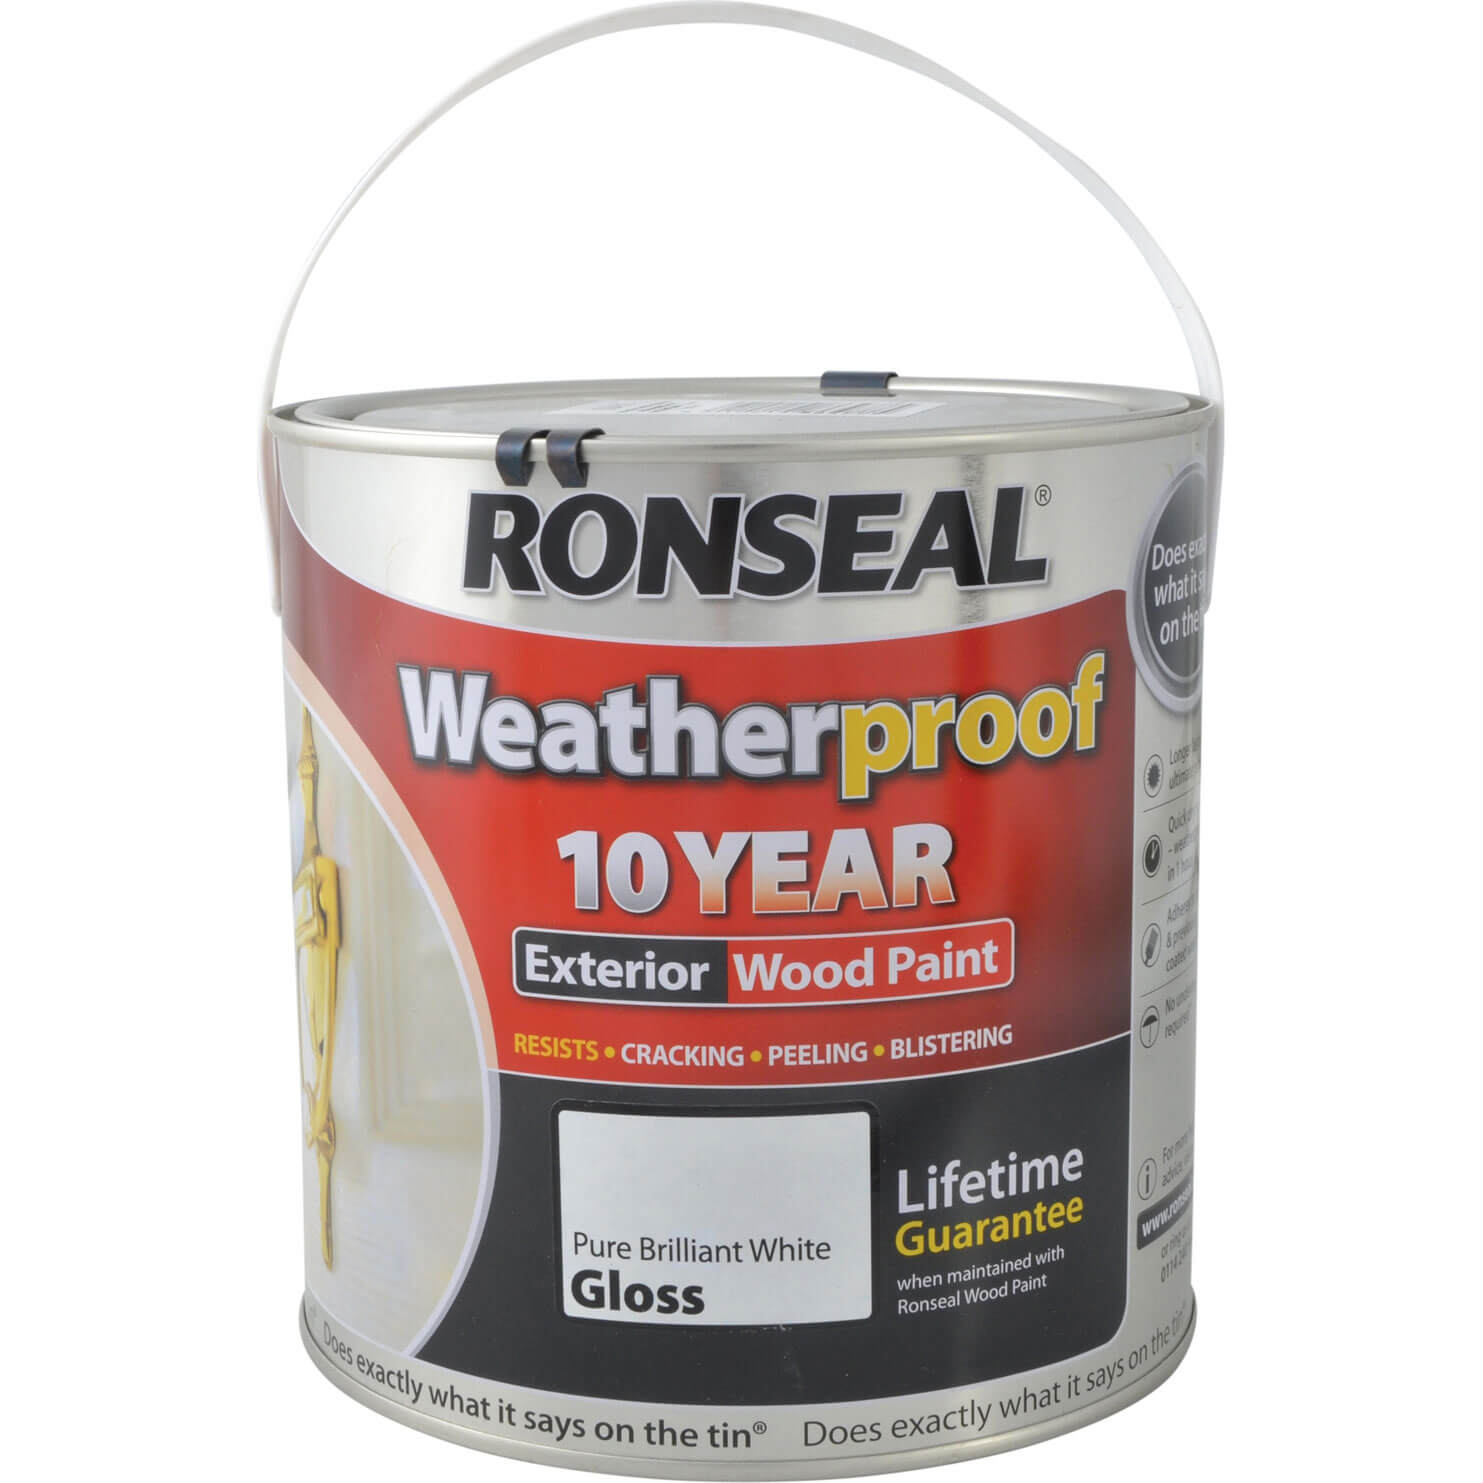 Ronseal weatherproof 10 year exterior wood paint brilliant white gloss 2 5l tooled - Exterior white gloss paint image ...